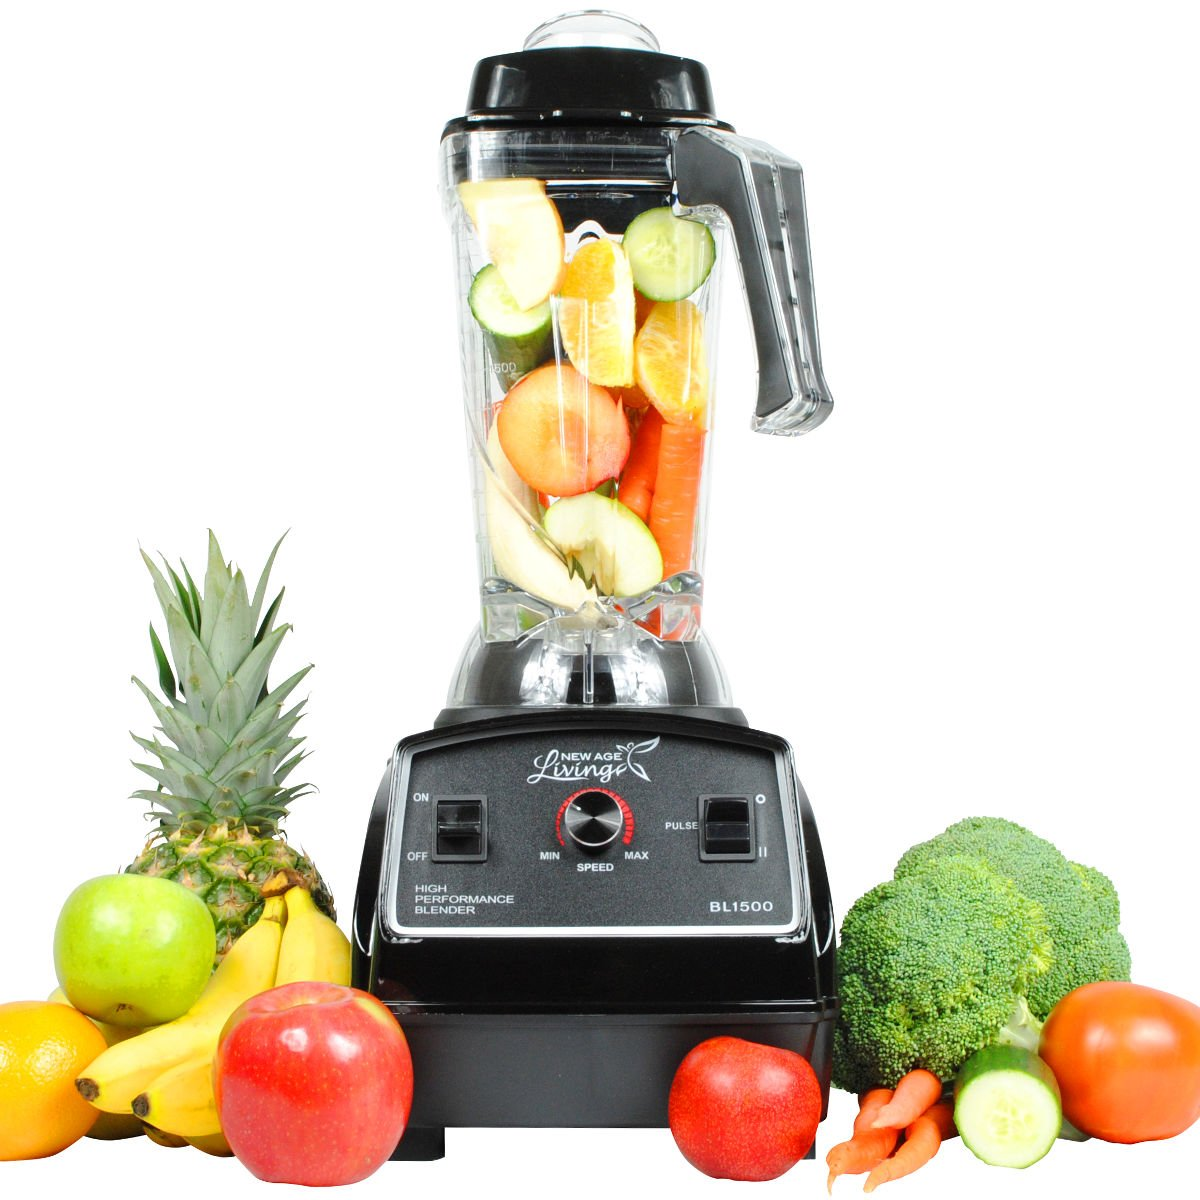 New Age Living BL1500 3HP Smoothie Blender - 5 Year Warranty - Blends Frozen Fruits, Vegetables, Greens, even Ice - Make Pro Quality Shakes & Soups by New Age Living   B00JZWHVTC